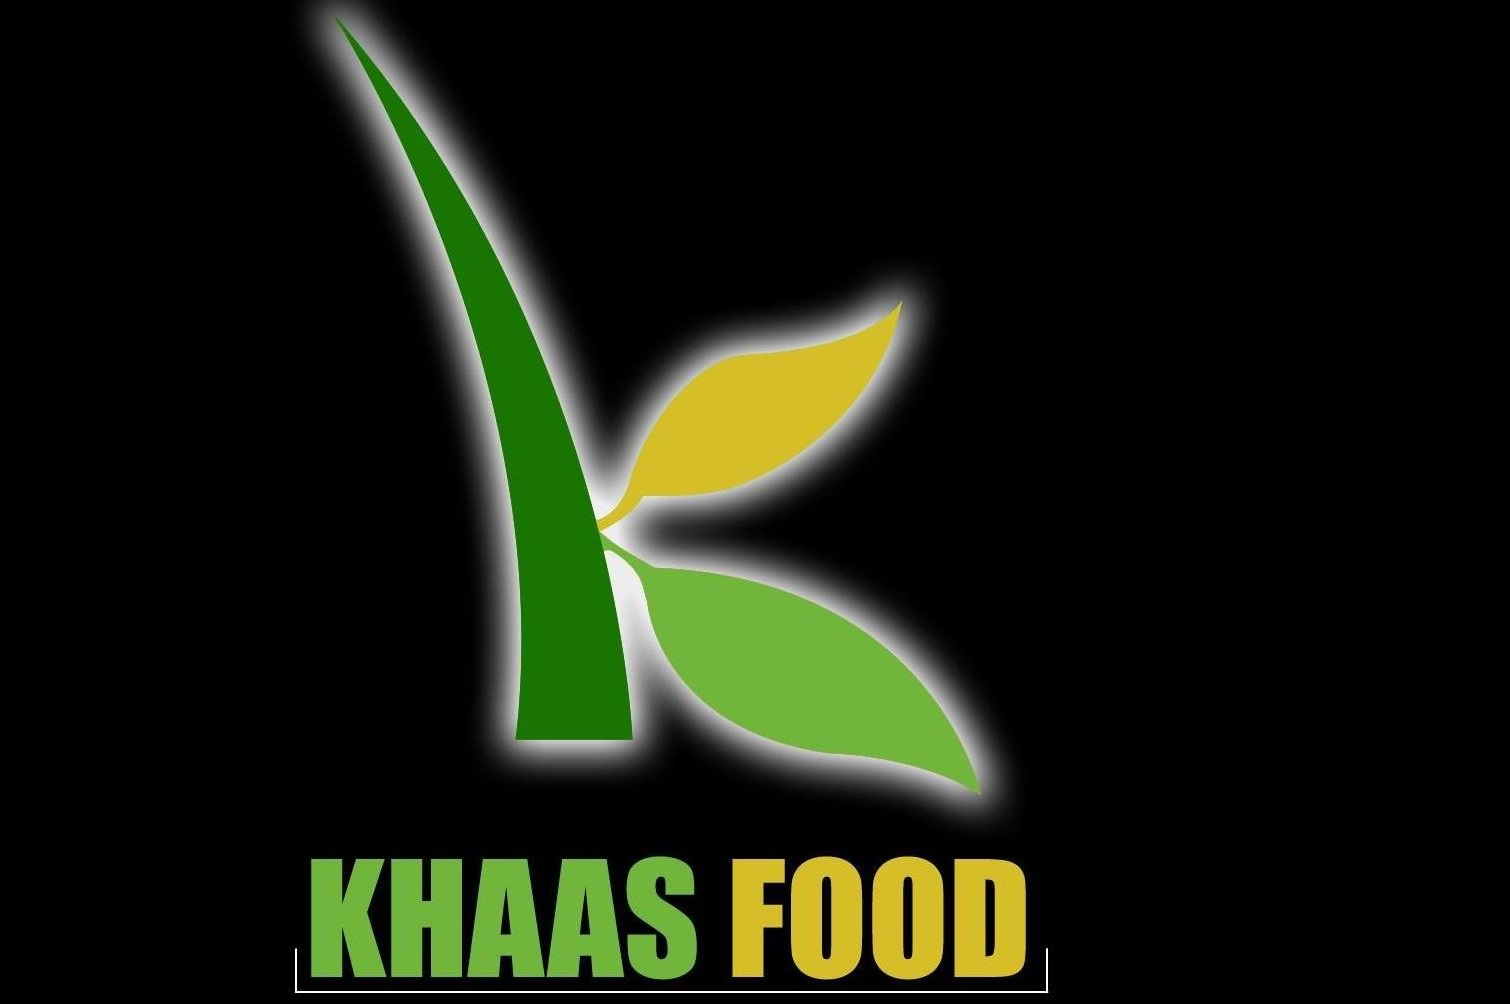 Khaas Food 101: Inside Khaas Food's Ambition To Become Your Ultimate Destination for Pure Food Products